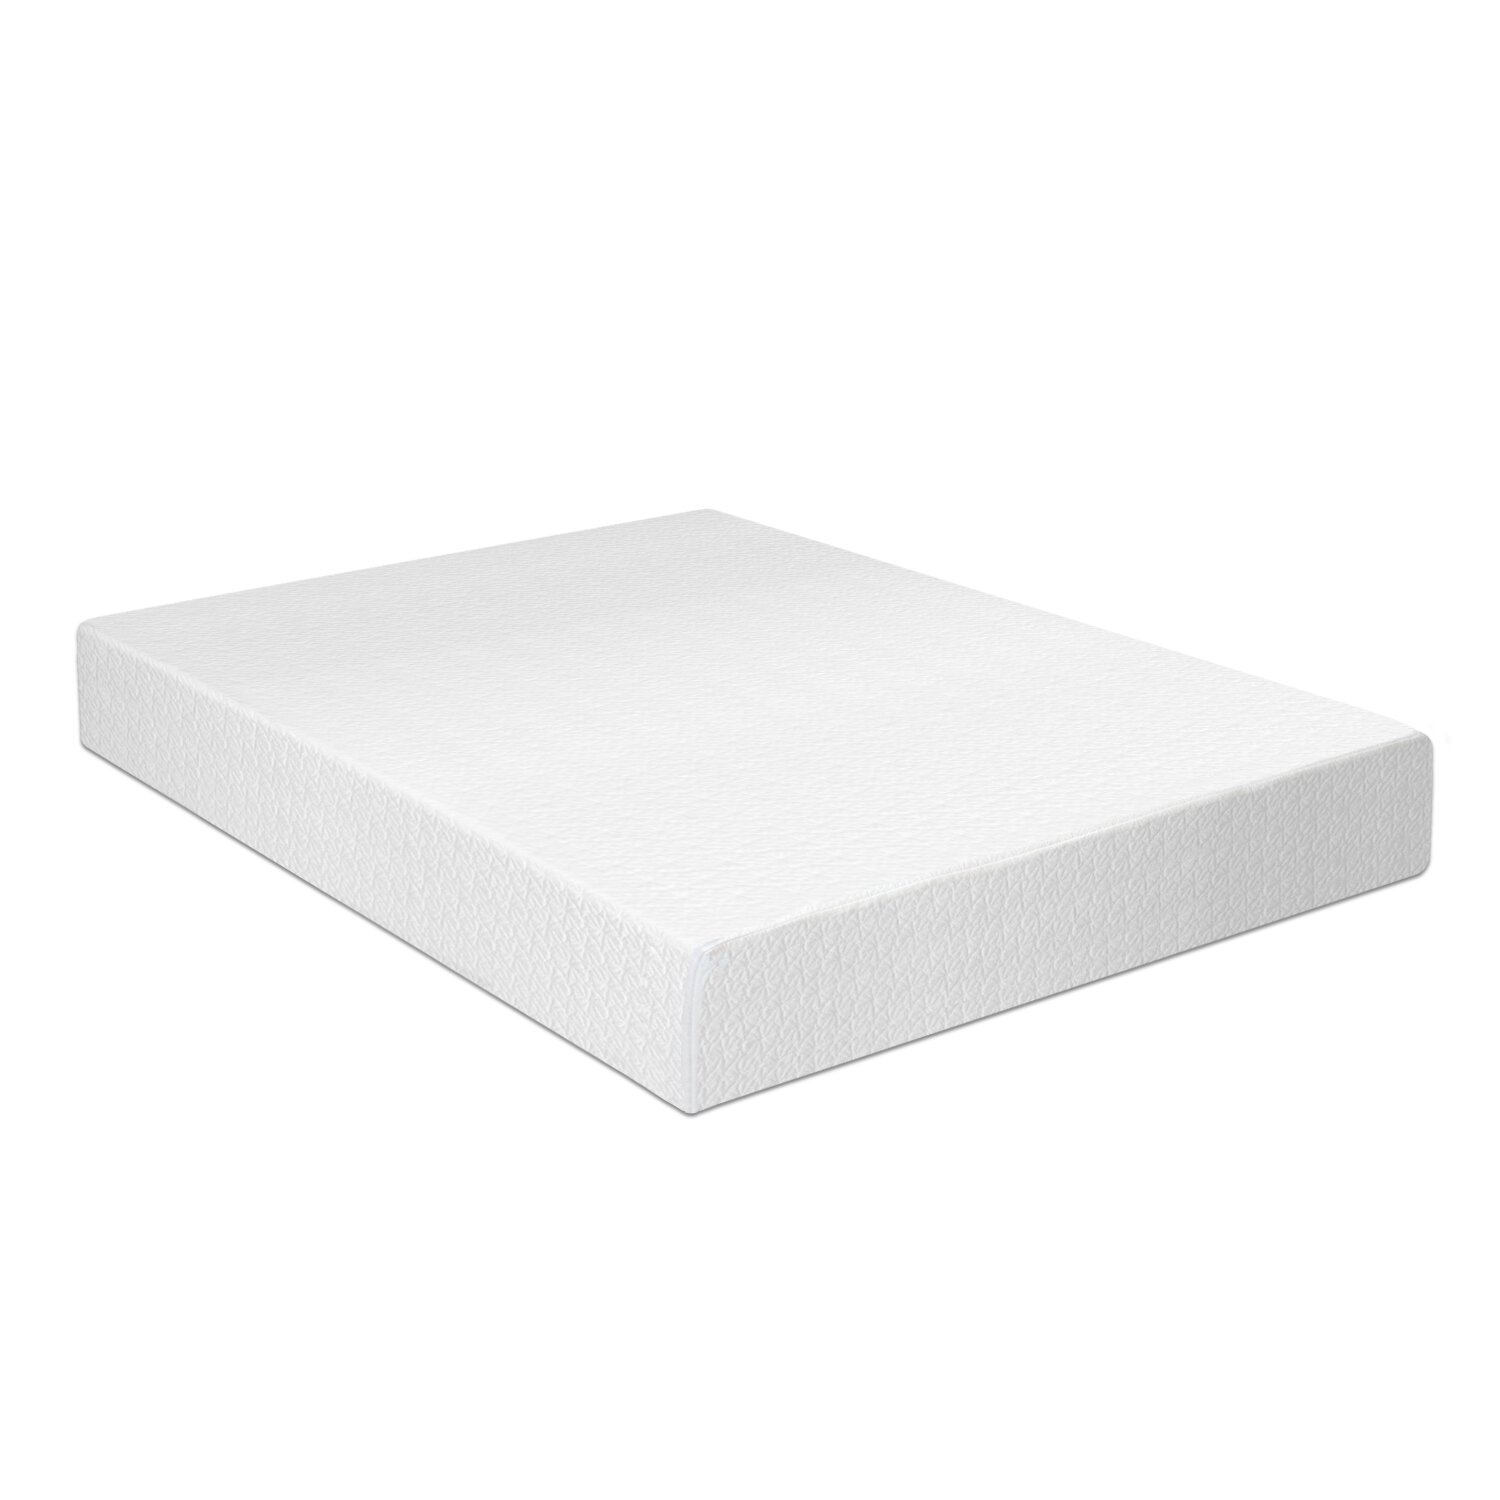 Best price quality best price quality 12 memory foam mattress reviews wayfair Top rated memory foam mattress